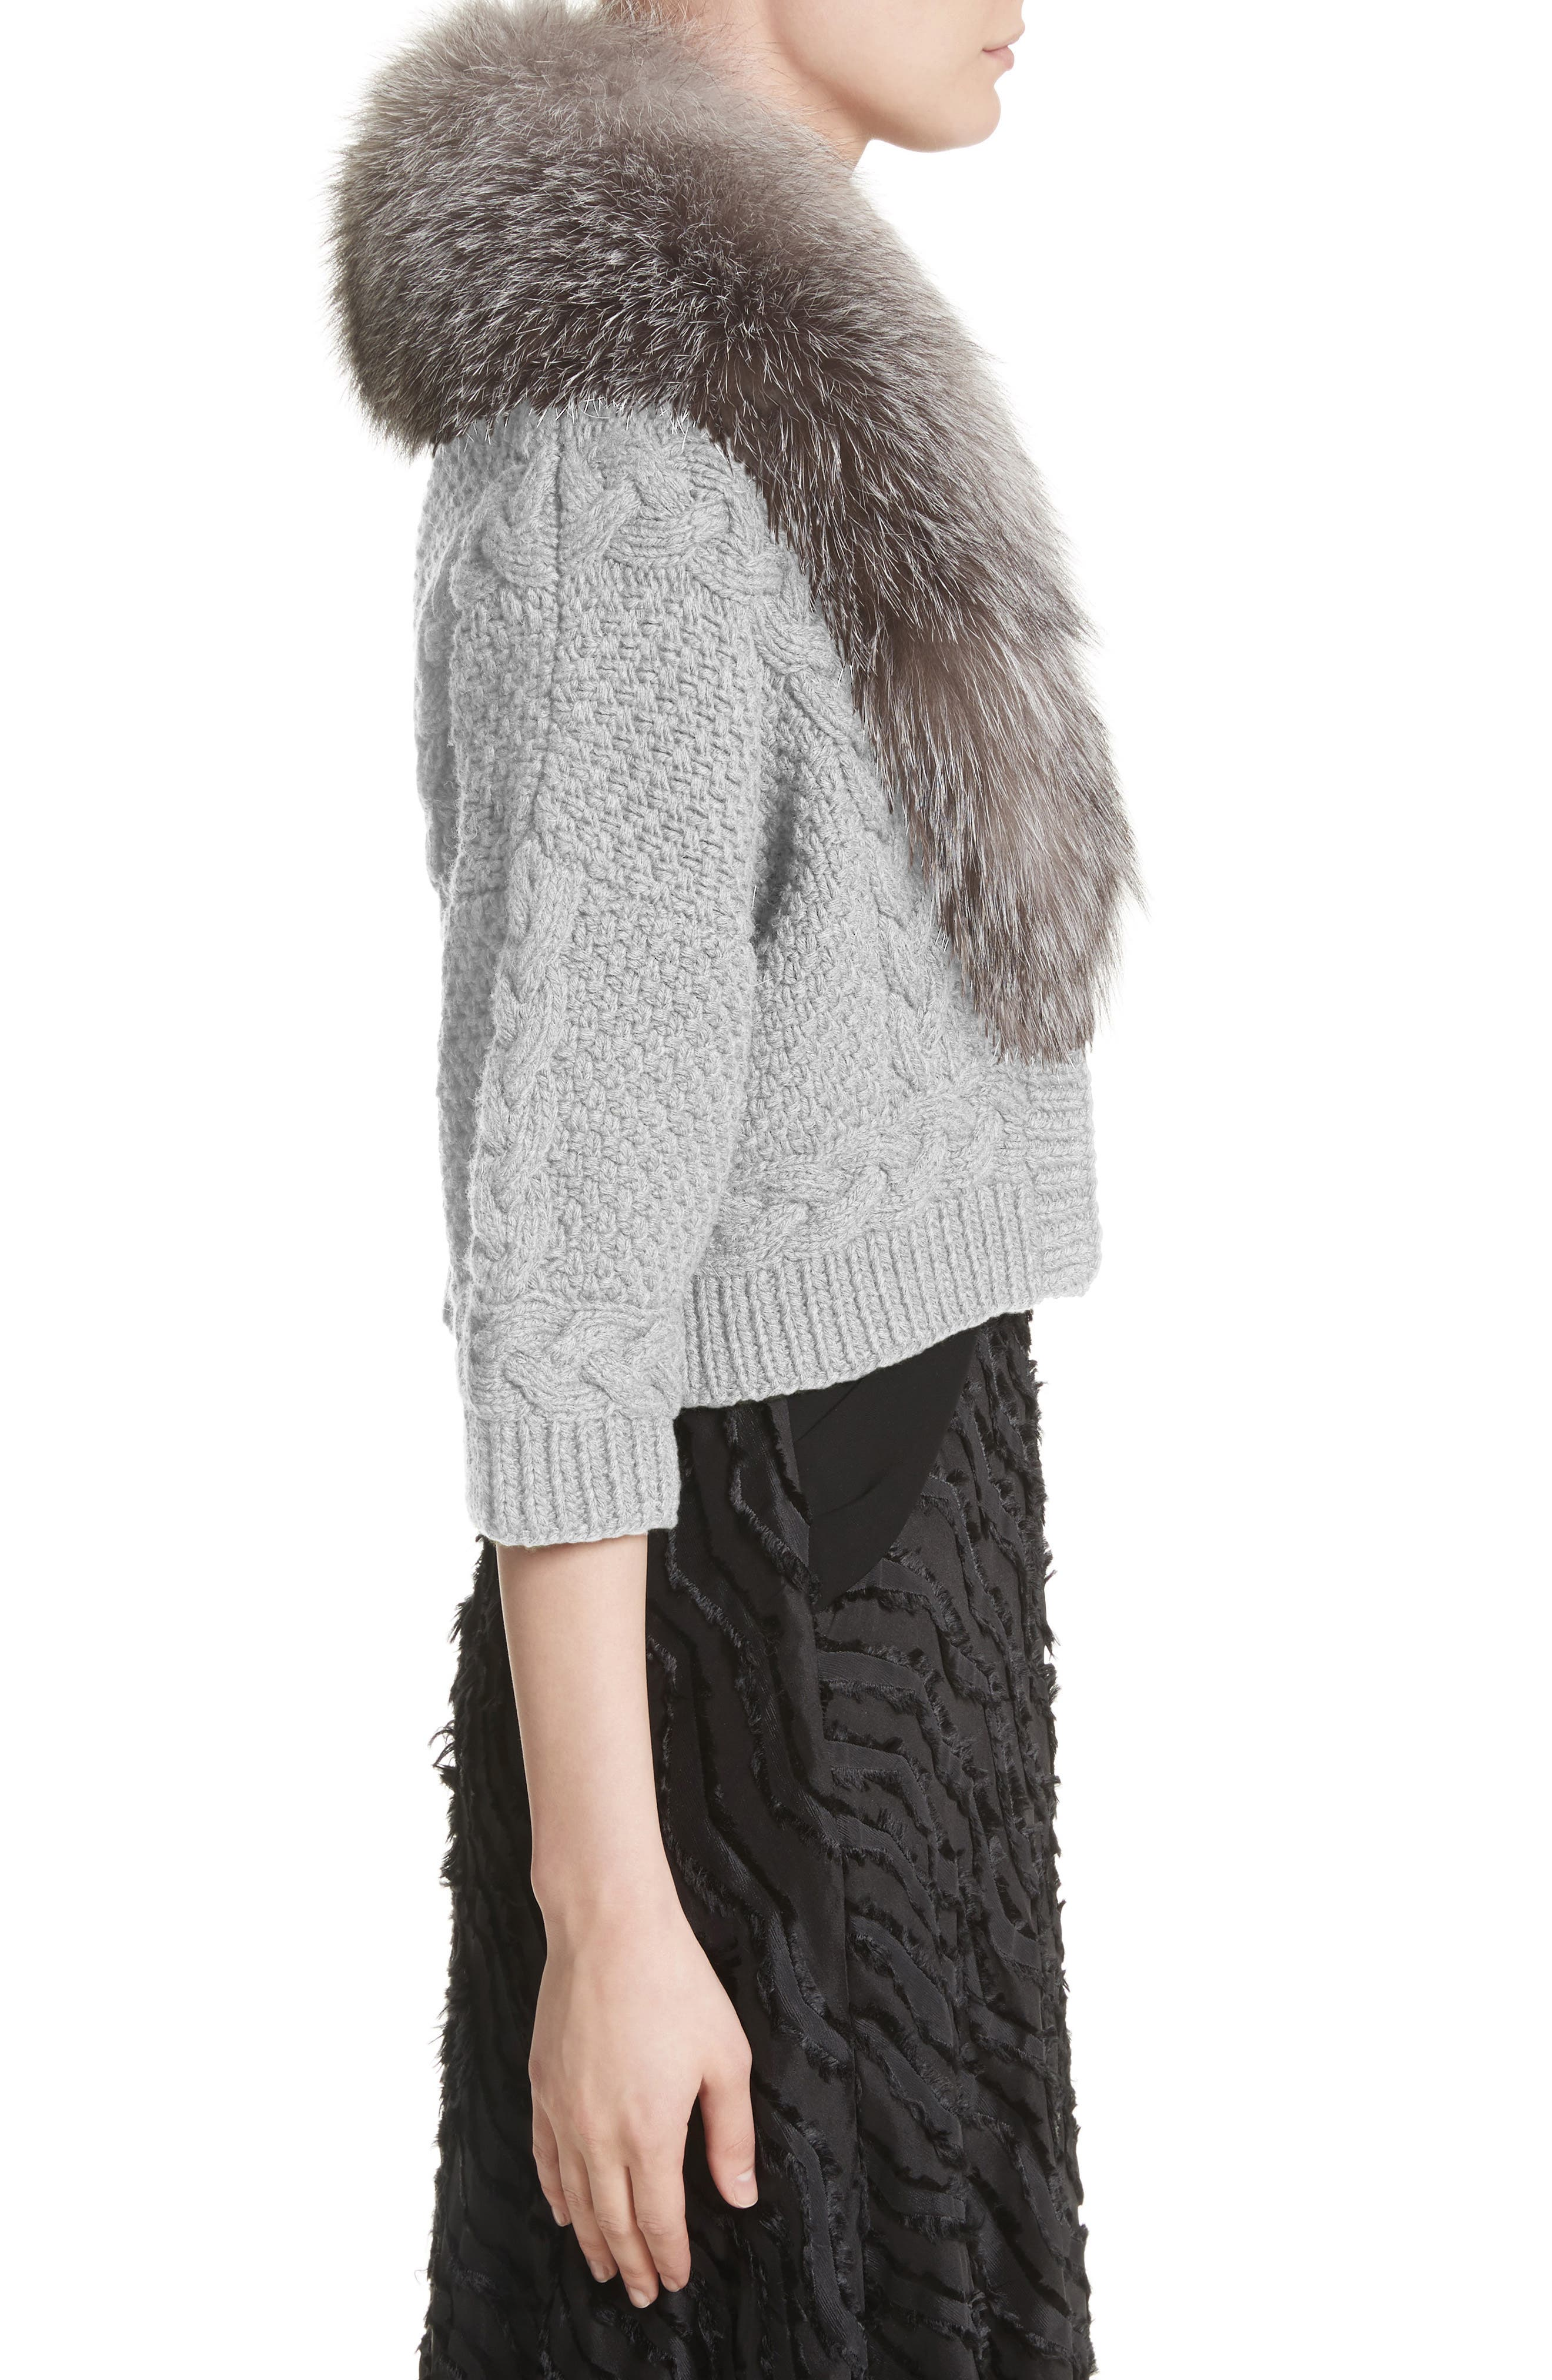 Alternate Image 3  - Yigal Azrouël Merino Wool & Cashmere Knit Bolero with Removable Genuine Fox Fur Collar